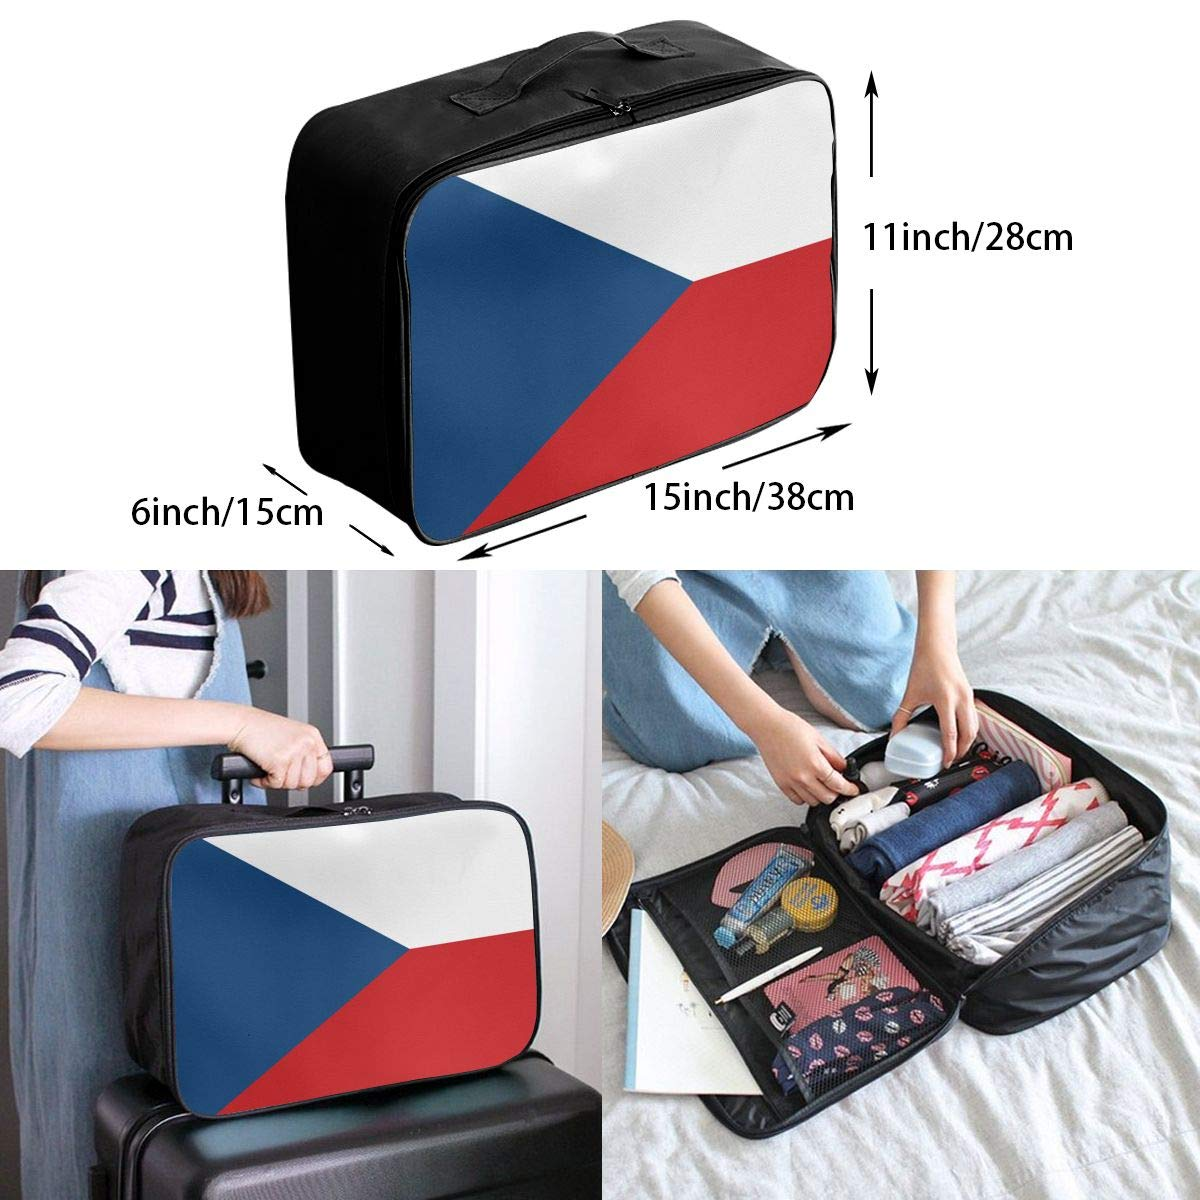 YueLJB Czech Republic Flag Lightweight Large Capacity Portable Luggage Bag Travel Duffel Bag Storage Carry Luggage Duffle Tote Bag